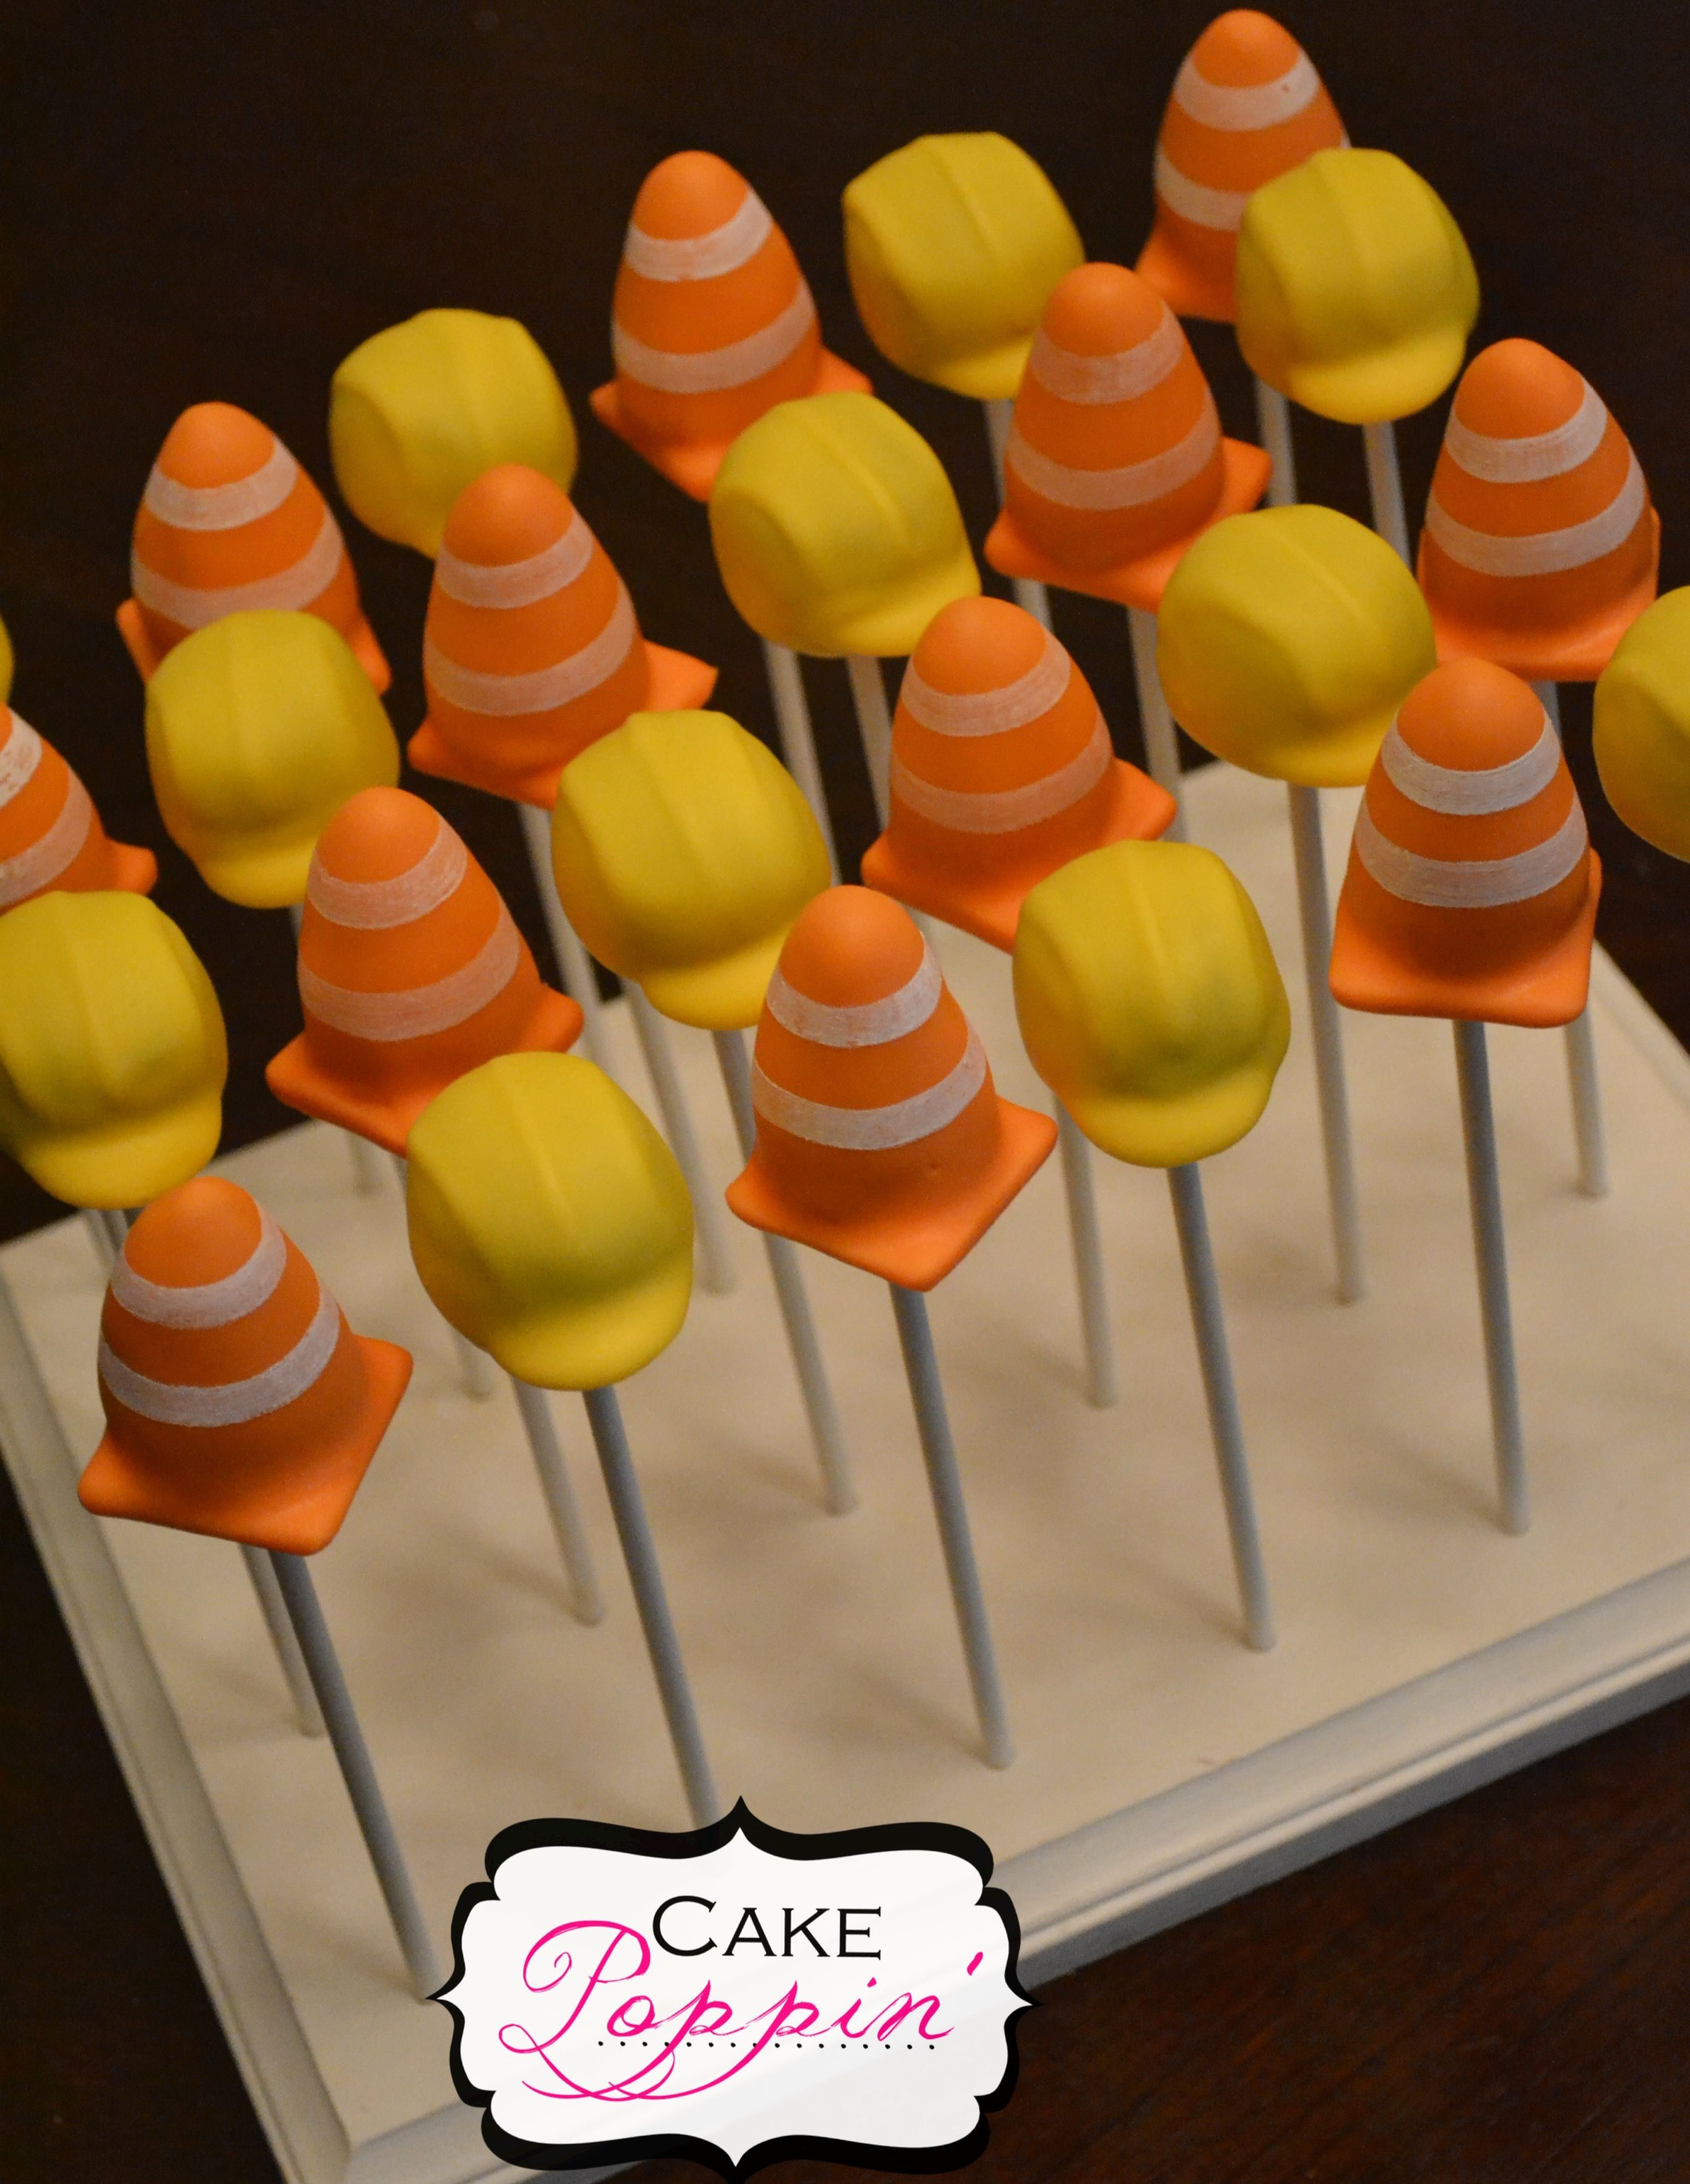 #Construction theme #cakepops - For all your cake decorating supplies, please visit craftcompany.co.uk